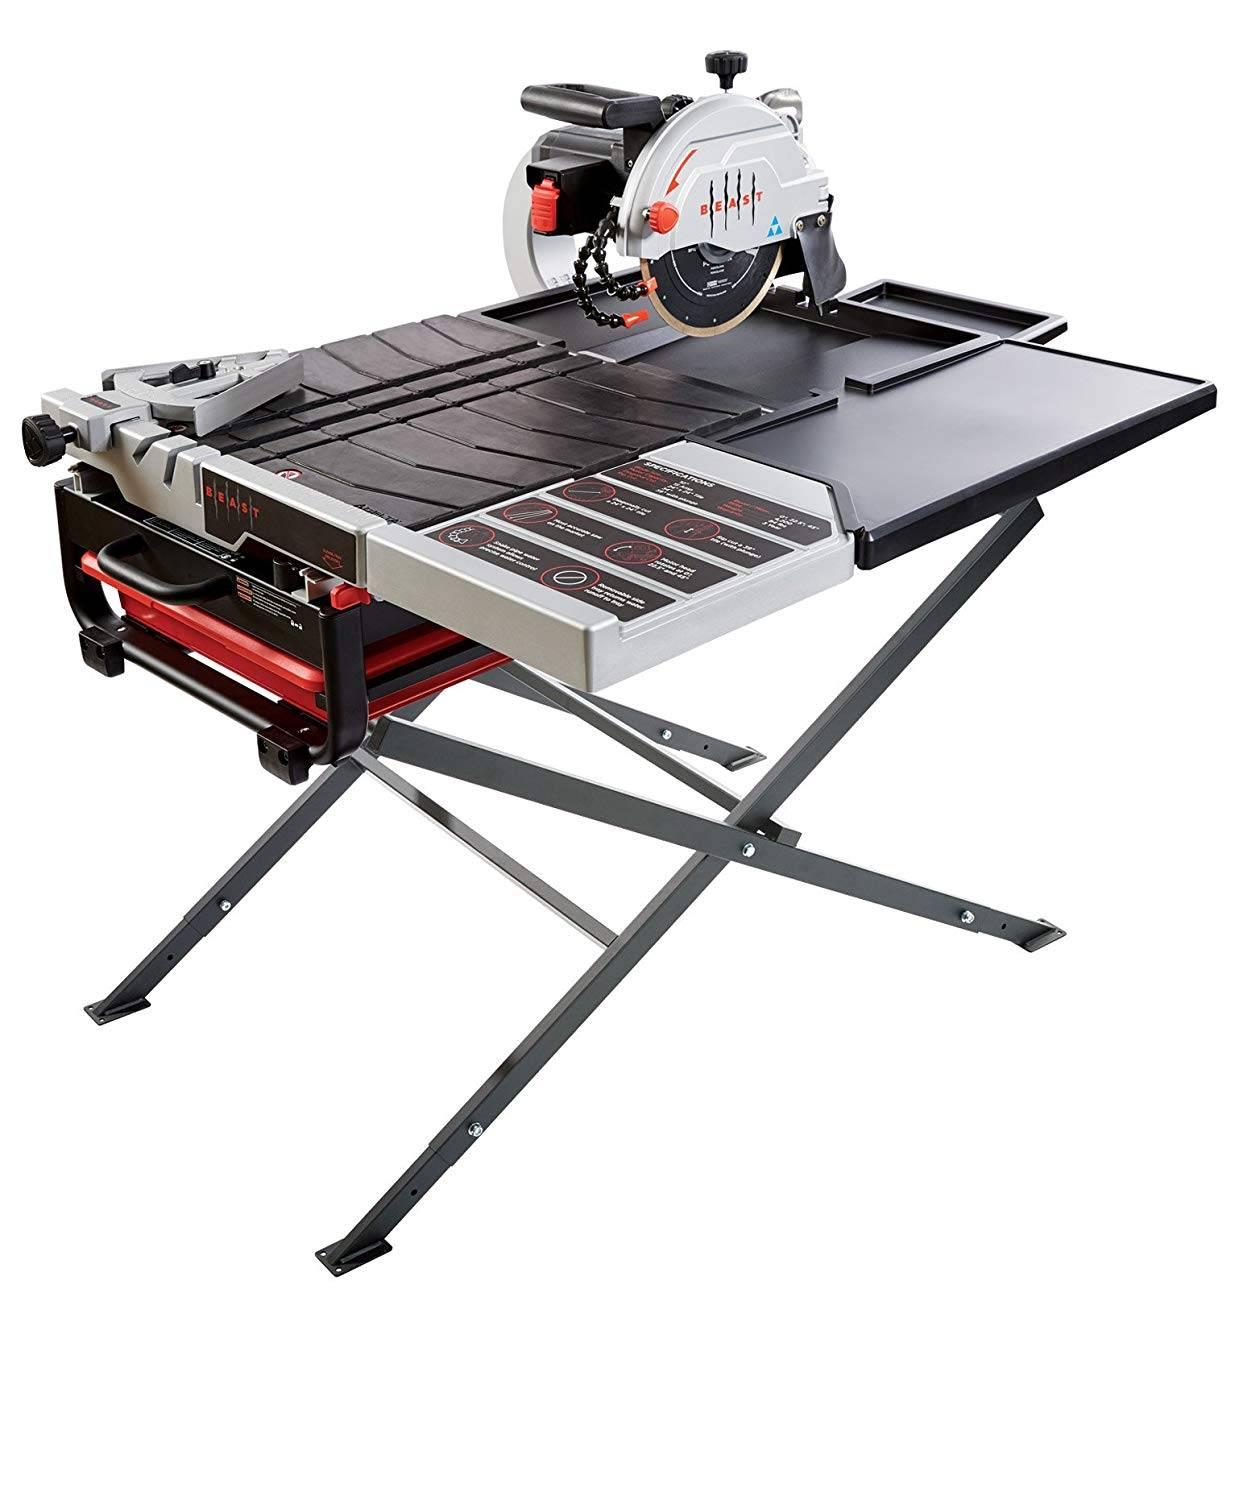 Lackmond Beast 10 Inch Wet Tile Saw Review Sawmuseum